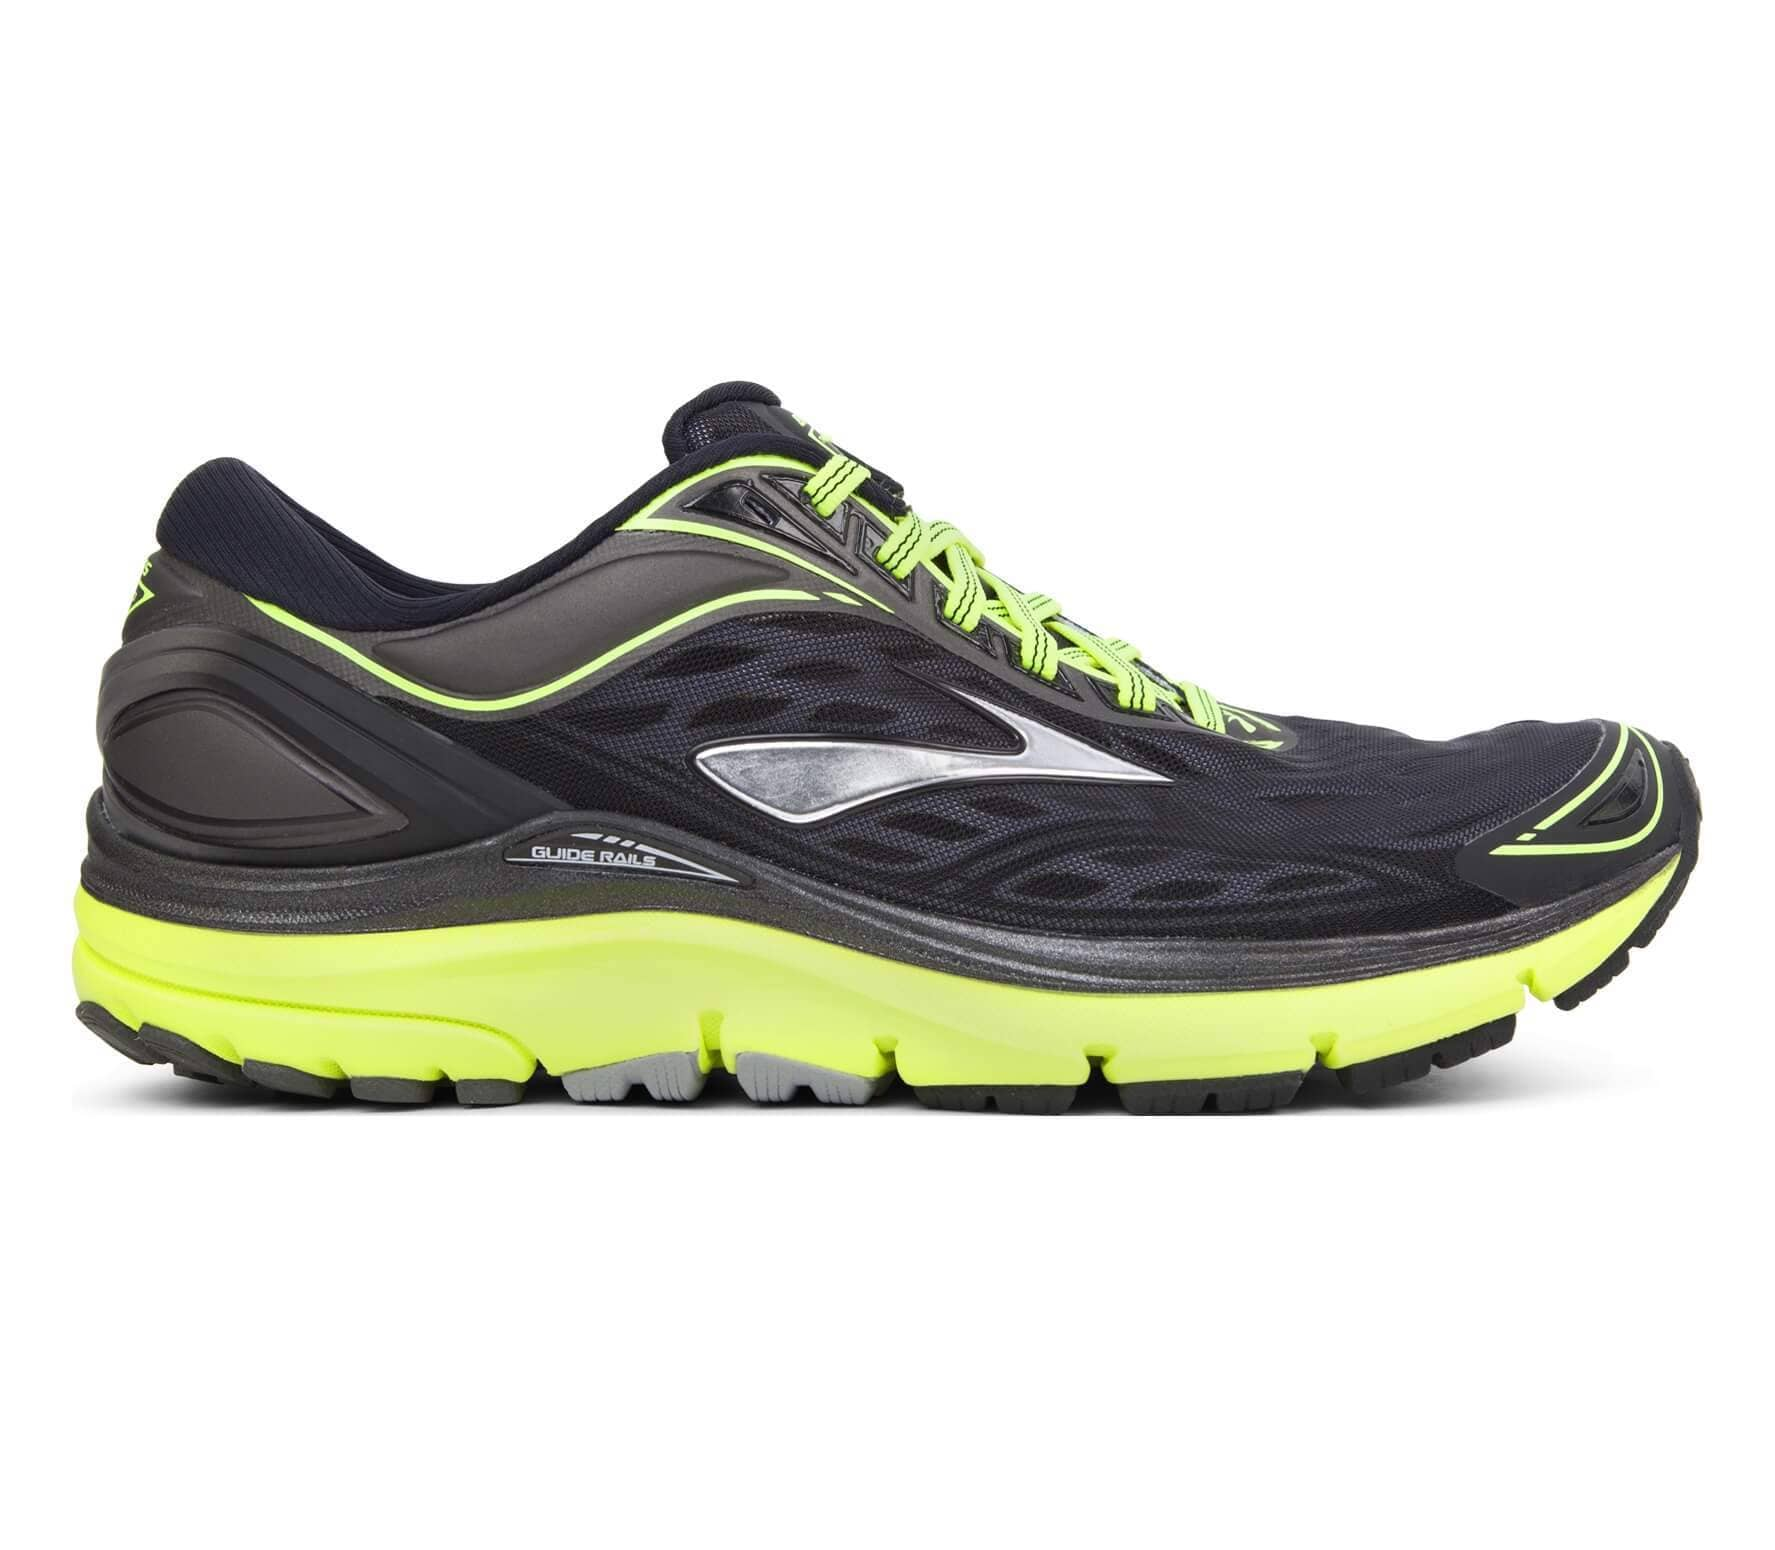 reputable site e112b ce4be Brooks - Transcend 3 men's running shoes (black/yellow)